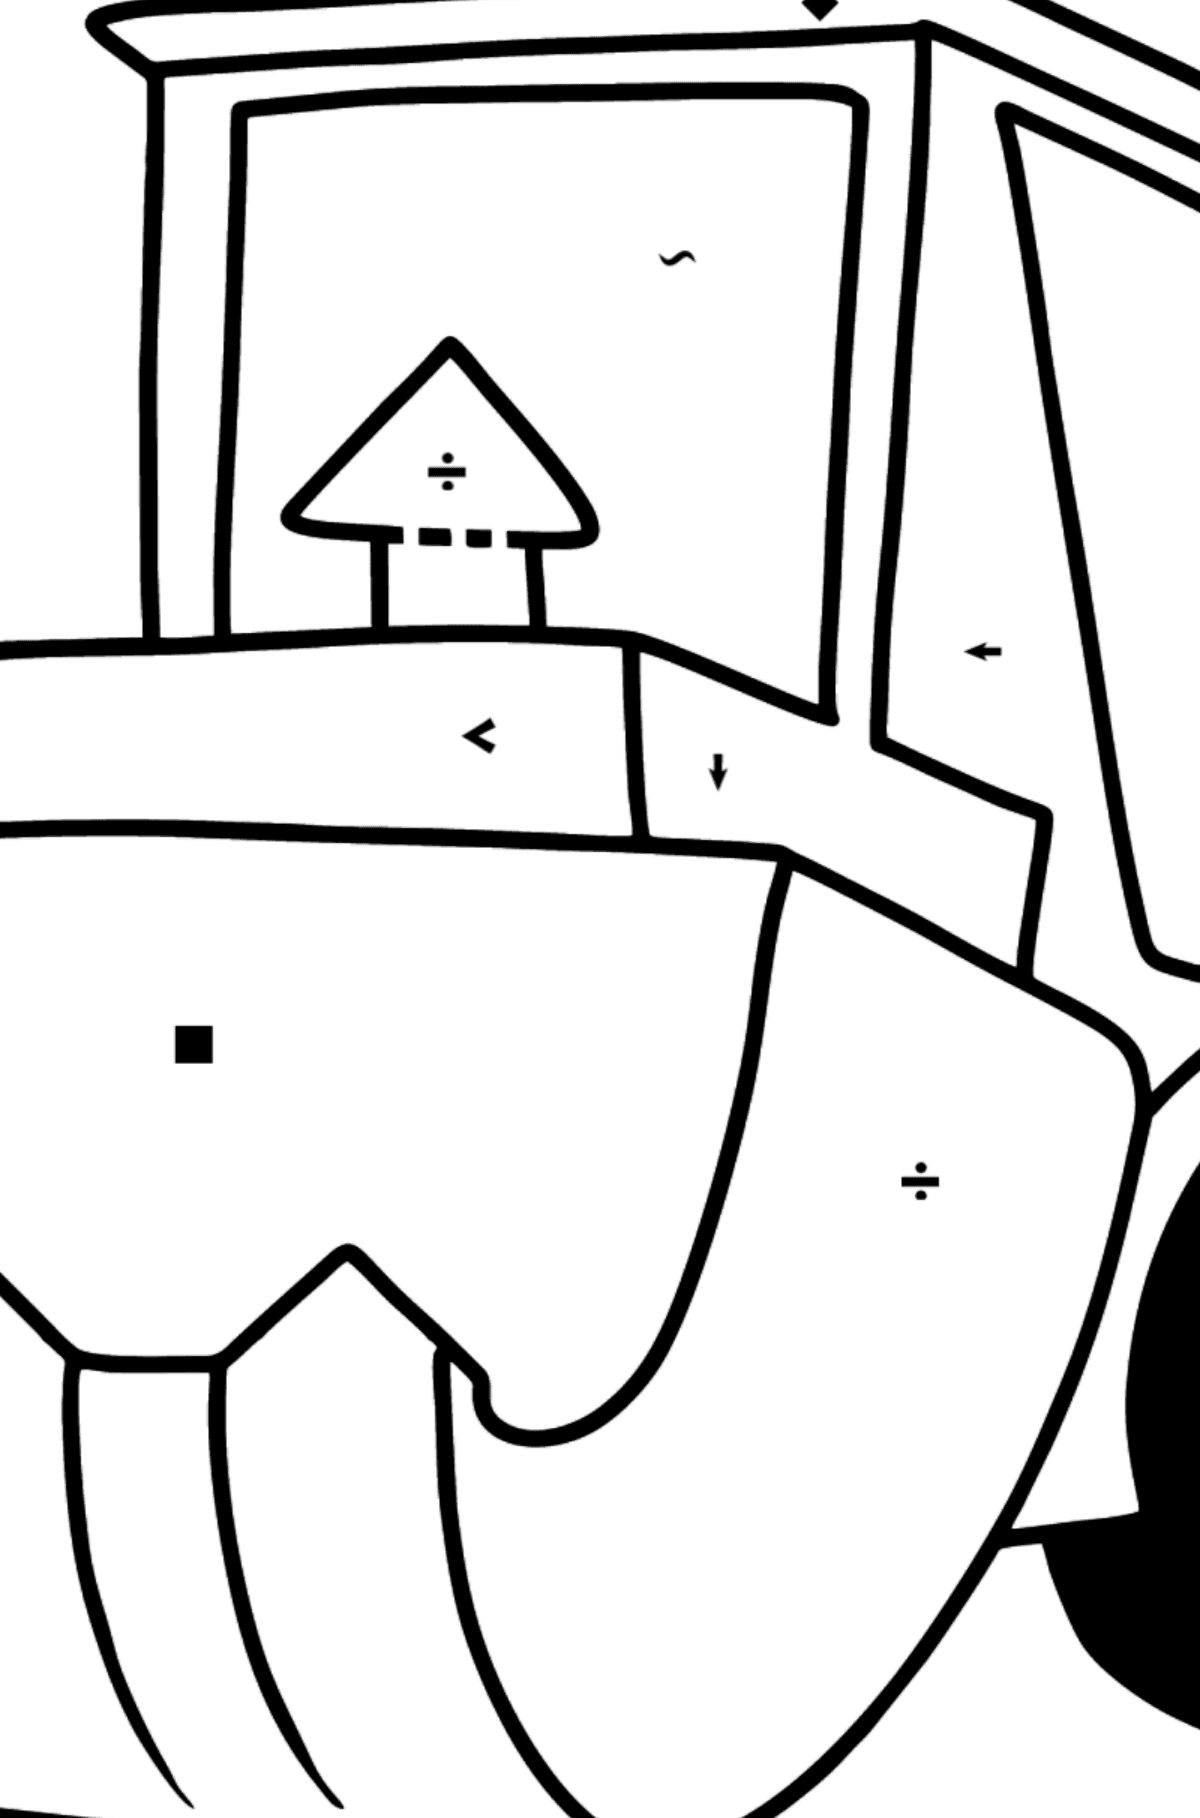 Tractor with Bag coloring page - Coloring by Symbols for Kids